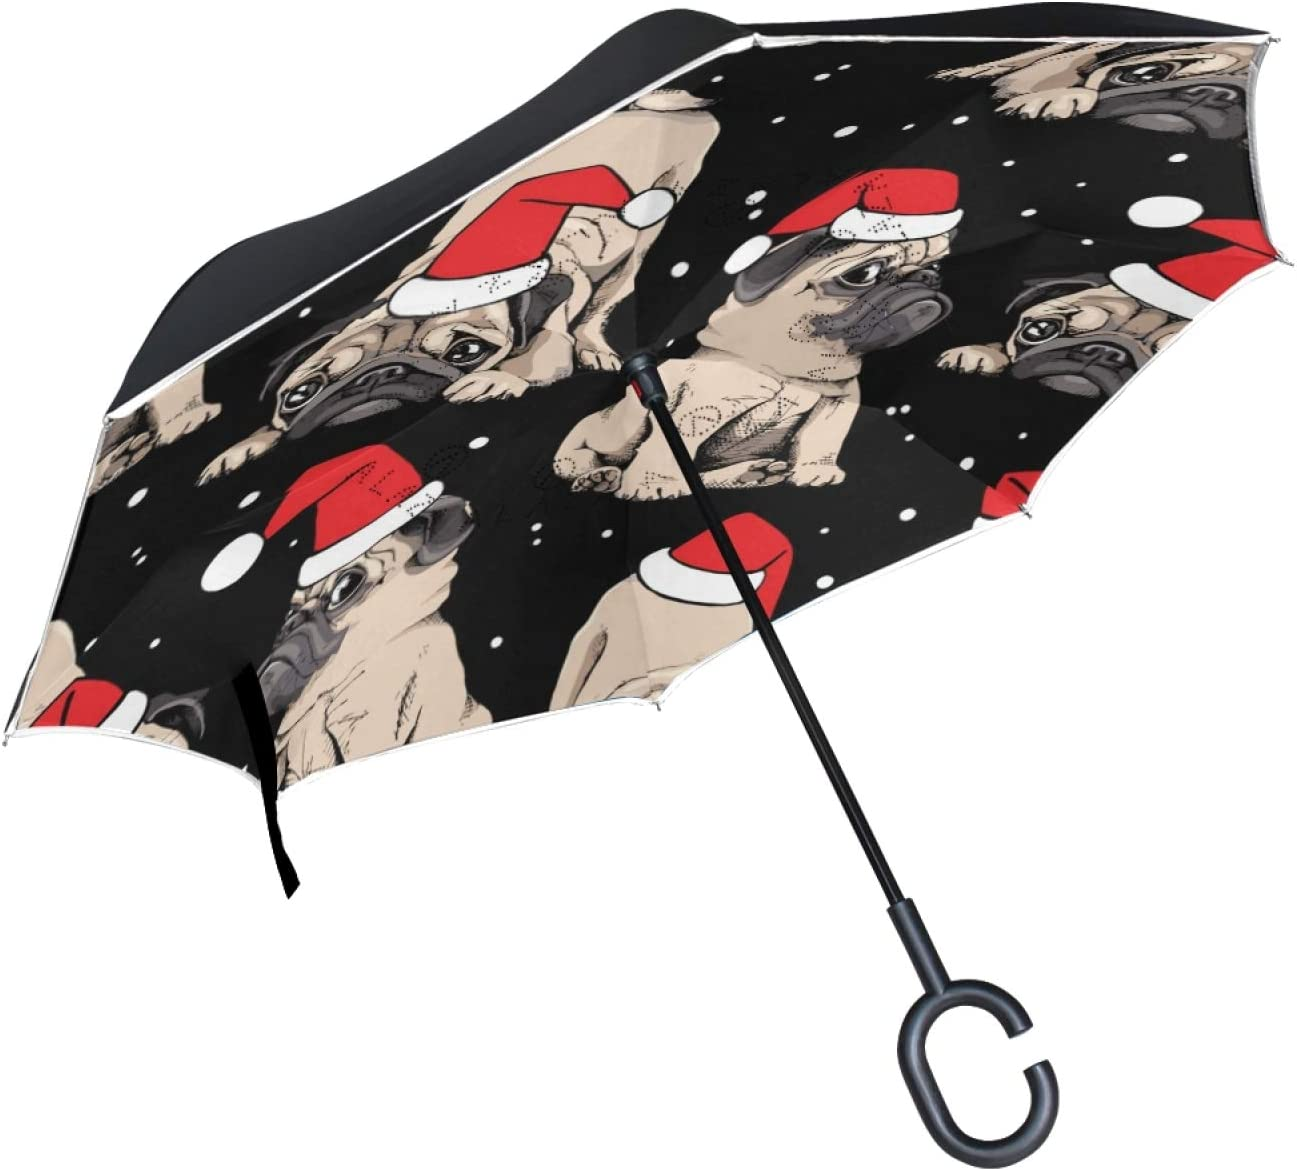 UNISE Christmas Adorable Sales Beige Puppies La Umbrella We OFFer at cheap prices Pugs Inverted